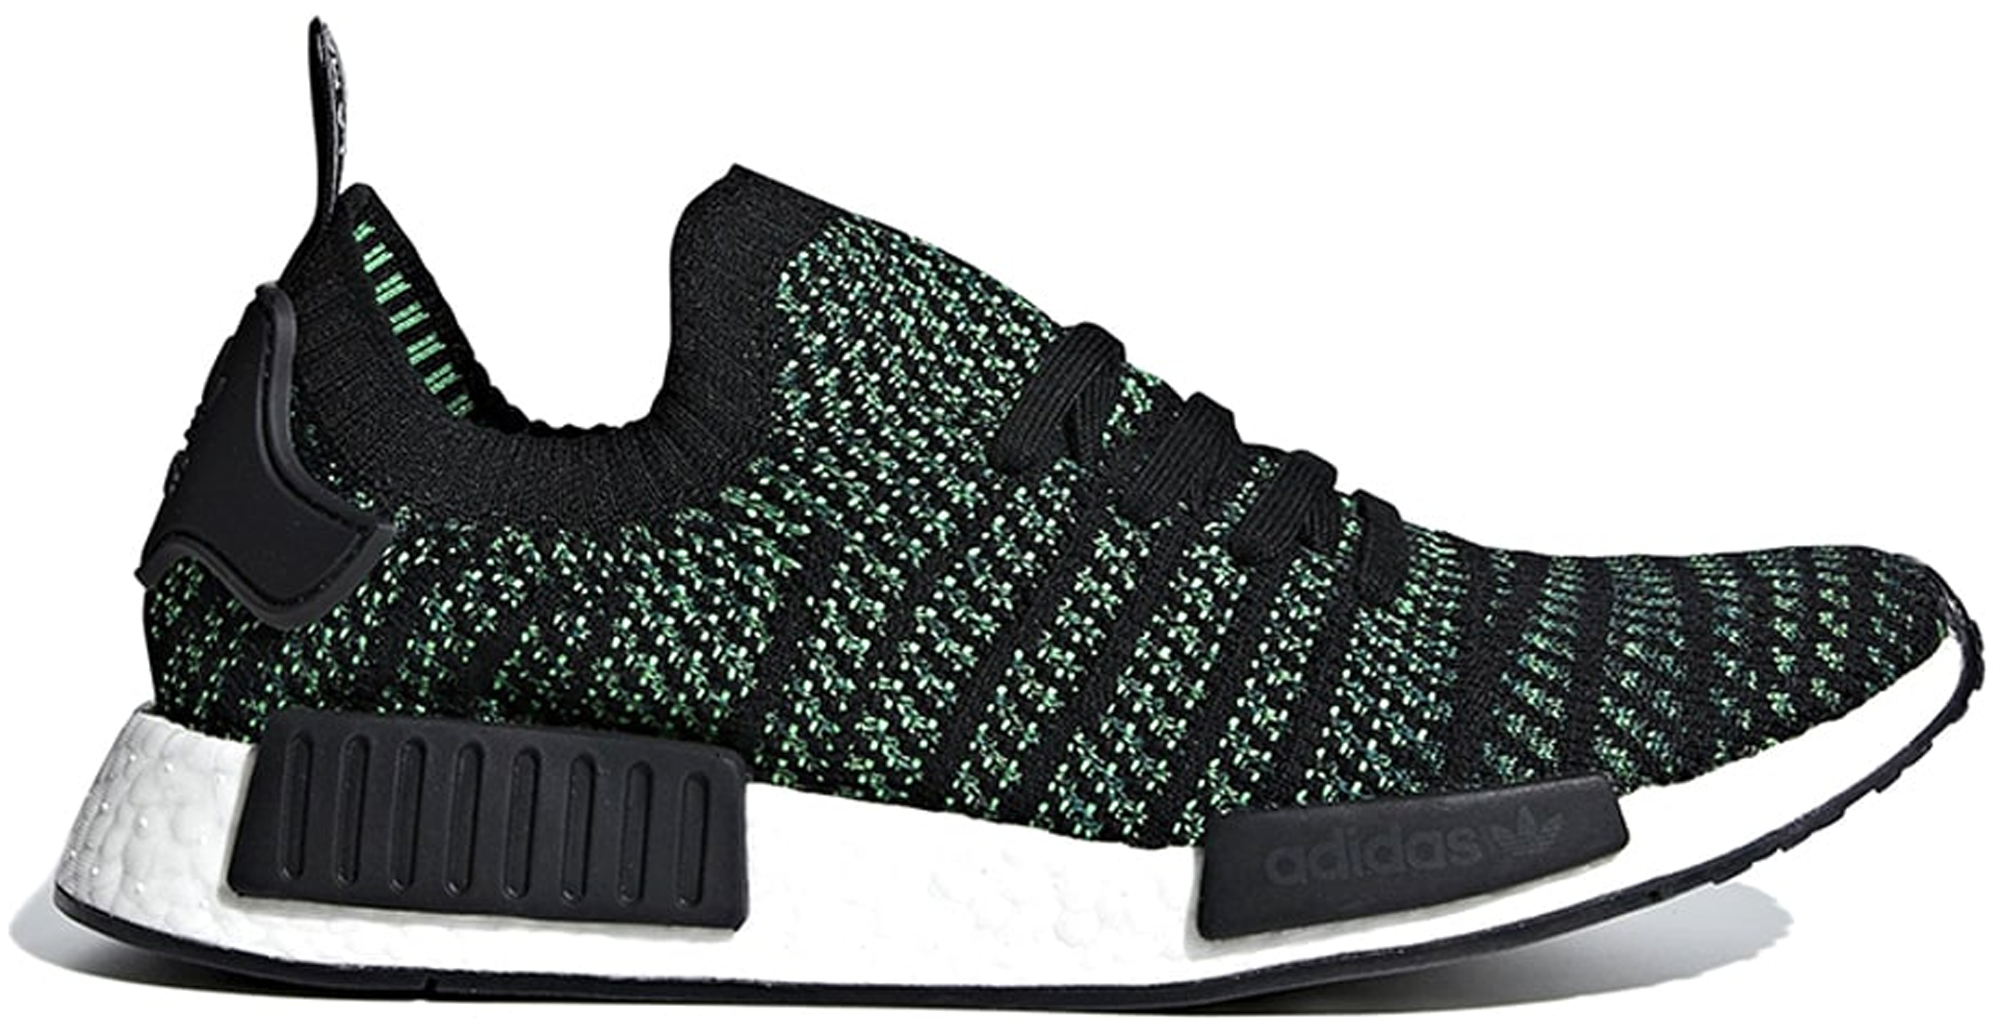 adidas NMD R1 STLT Stealth Pack Noble Green